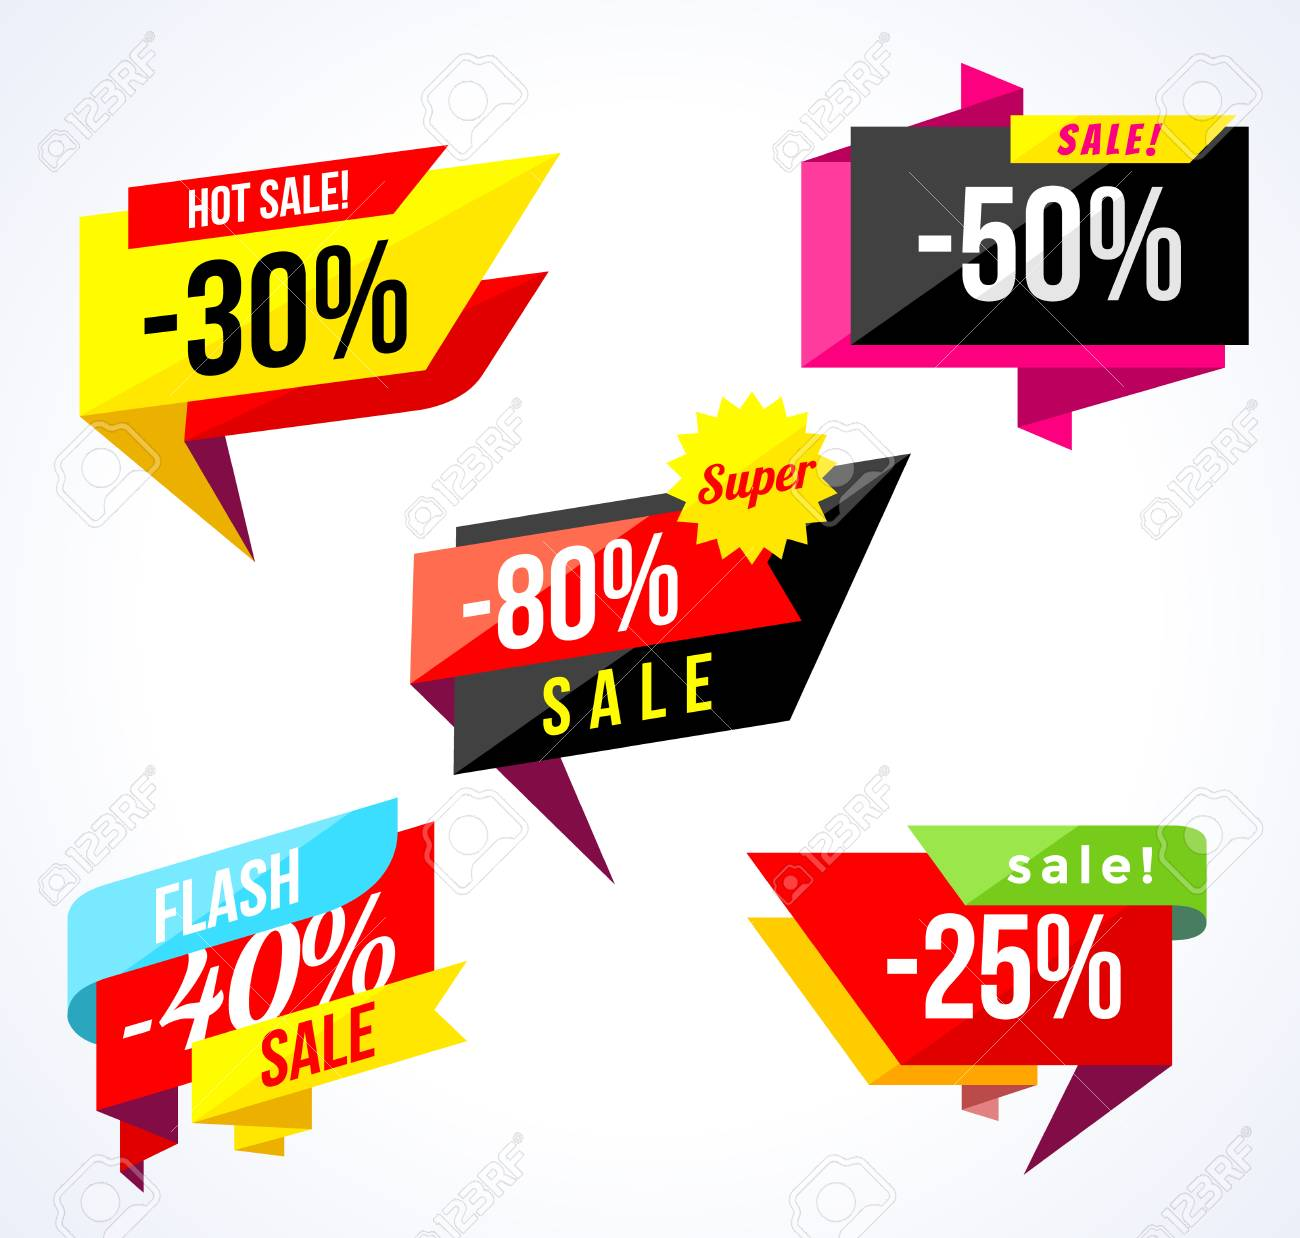 Sale Banner Banners Golf Banners